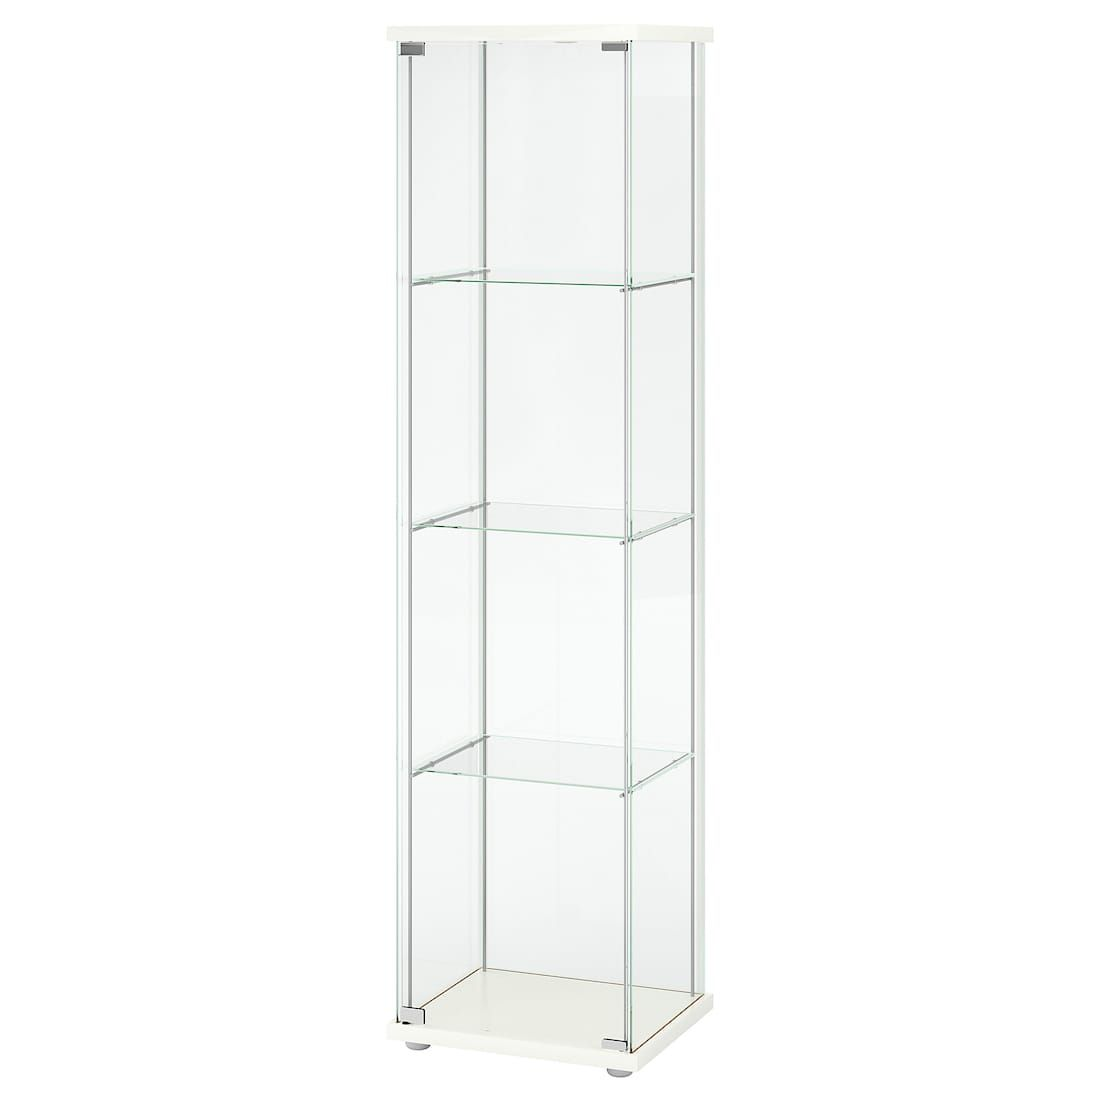 Ikea Detolf White Glass Door Cabinet Bookshelves In 2019